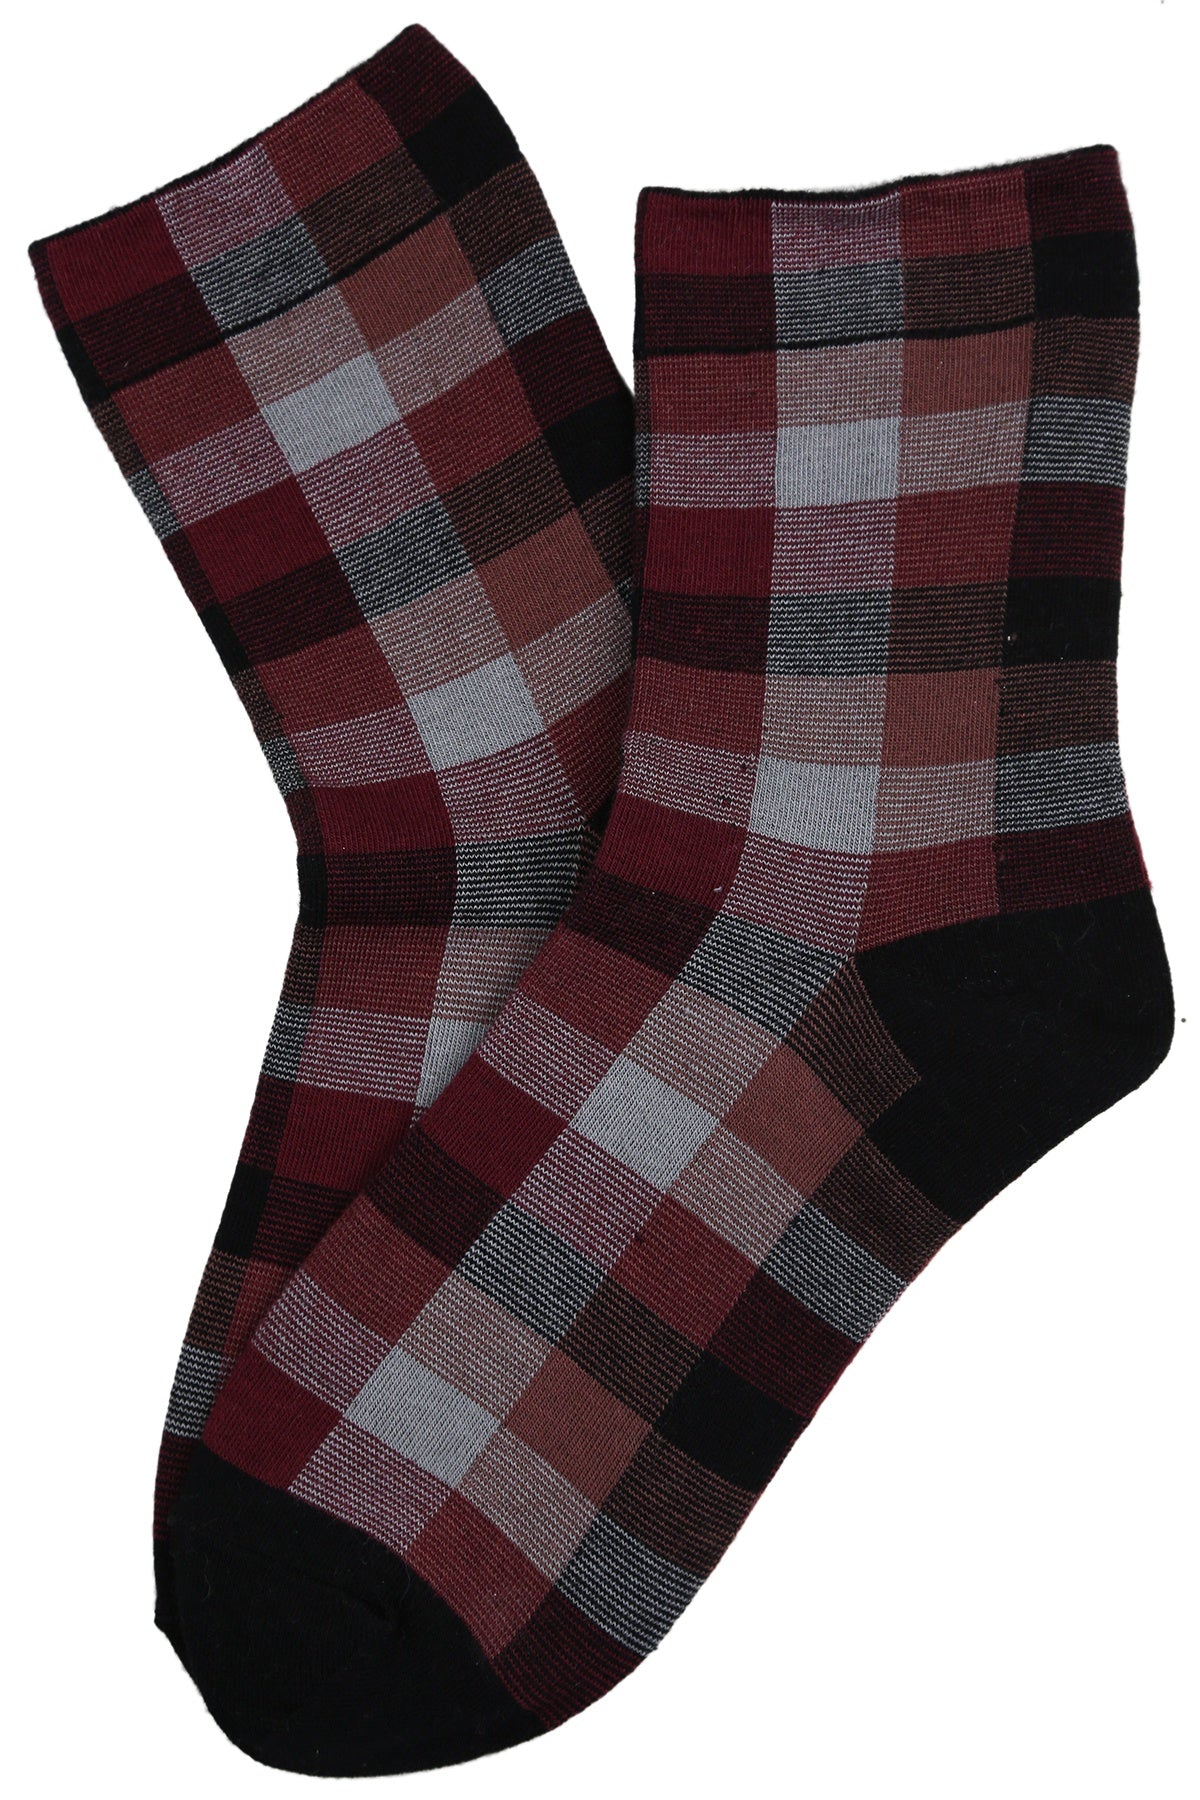 Tammy Tartan Cotton Socks Black/Vino